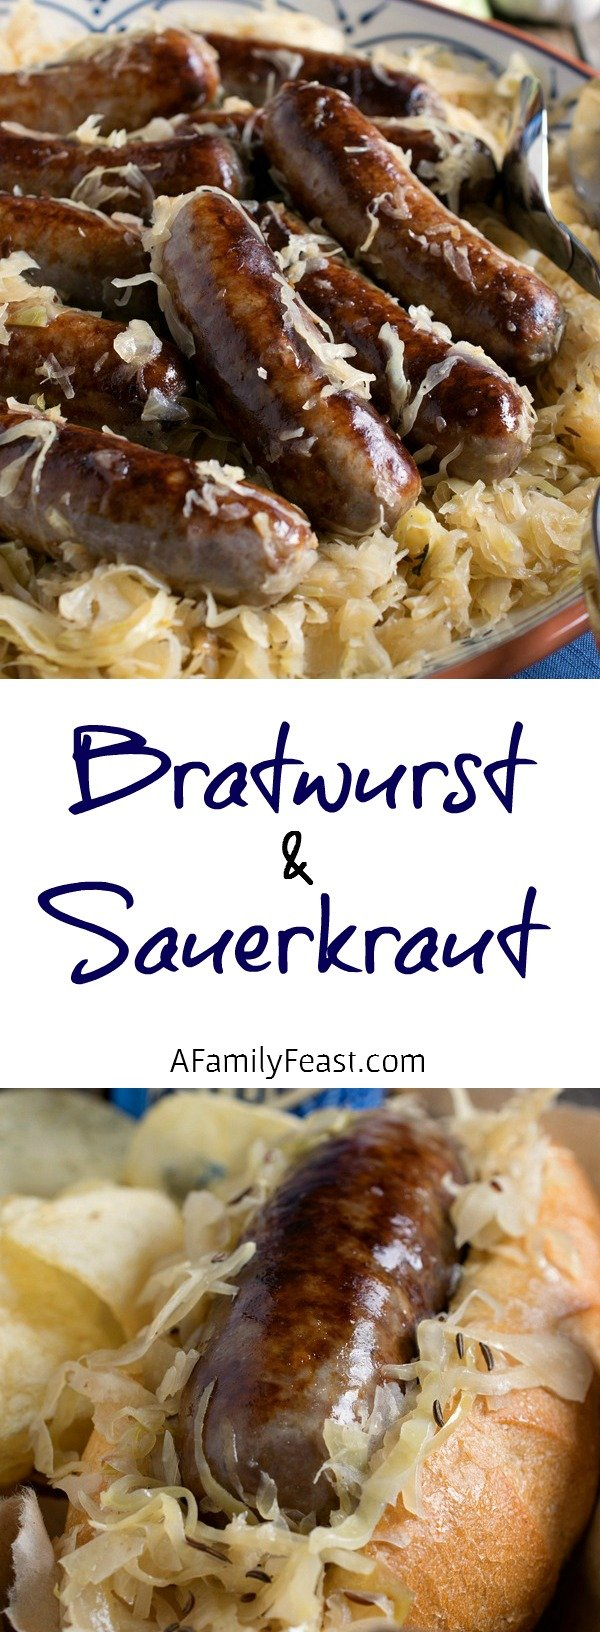 recipe: german bratwurst and sauerkraut recipe [33]